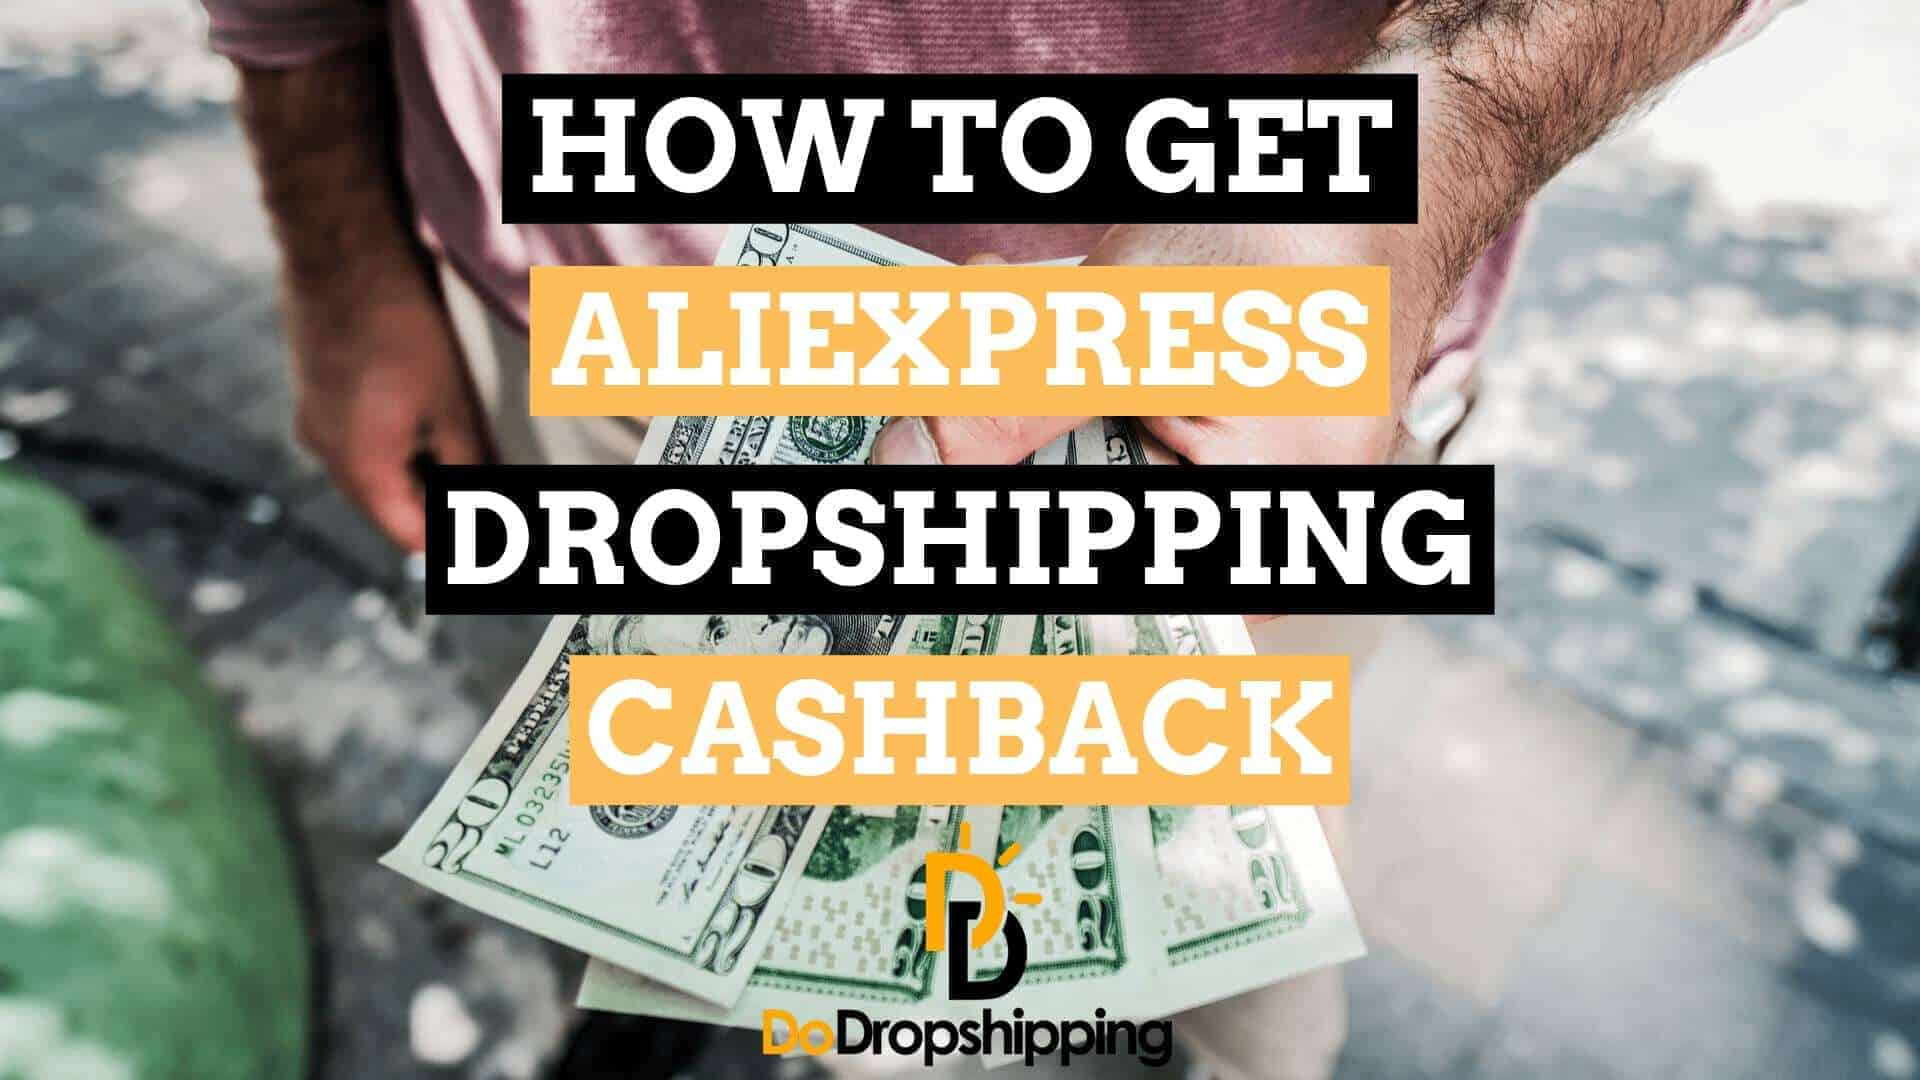 Dropshipping With AliExpress: Get AliExpress Cashback (2019)